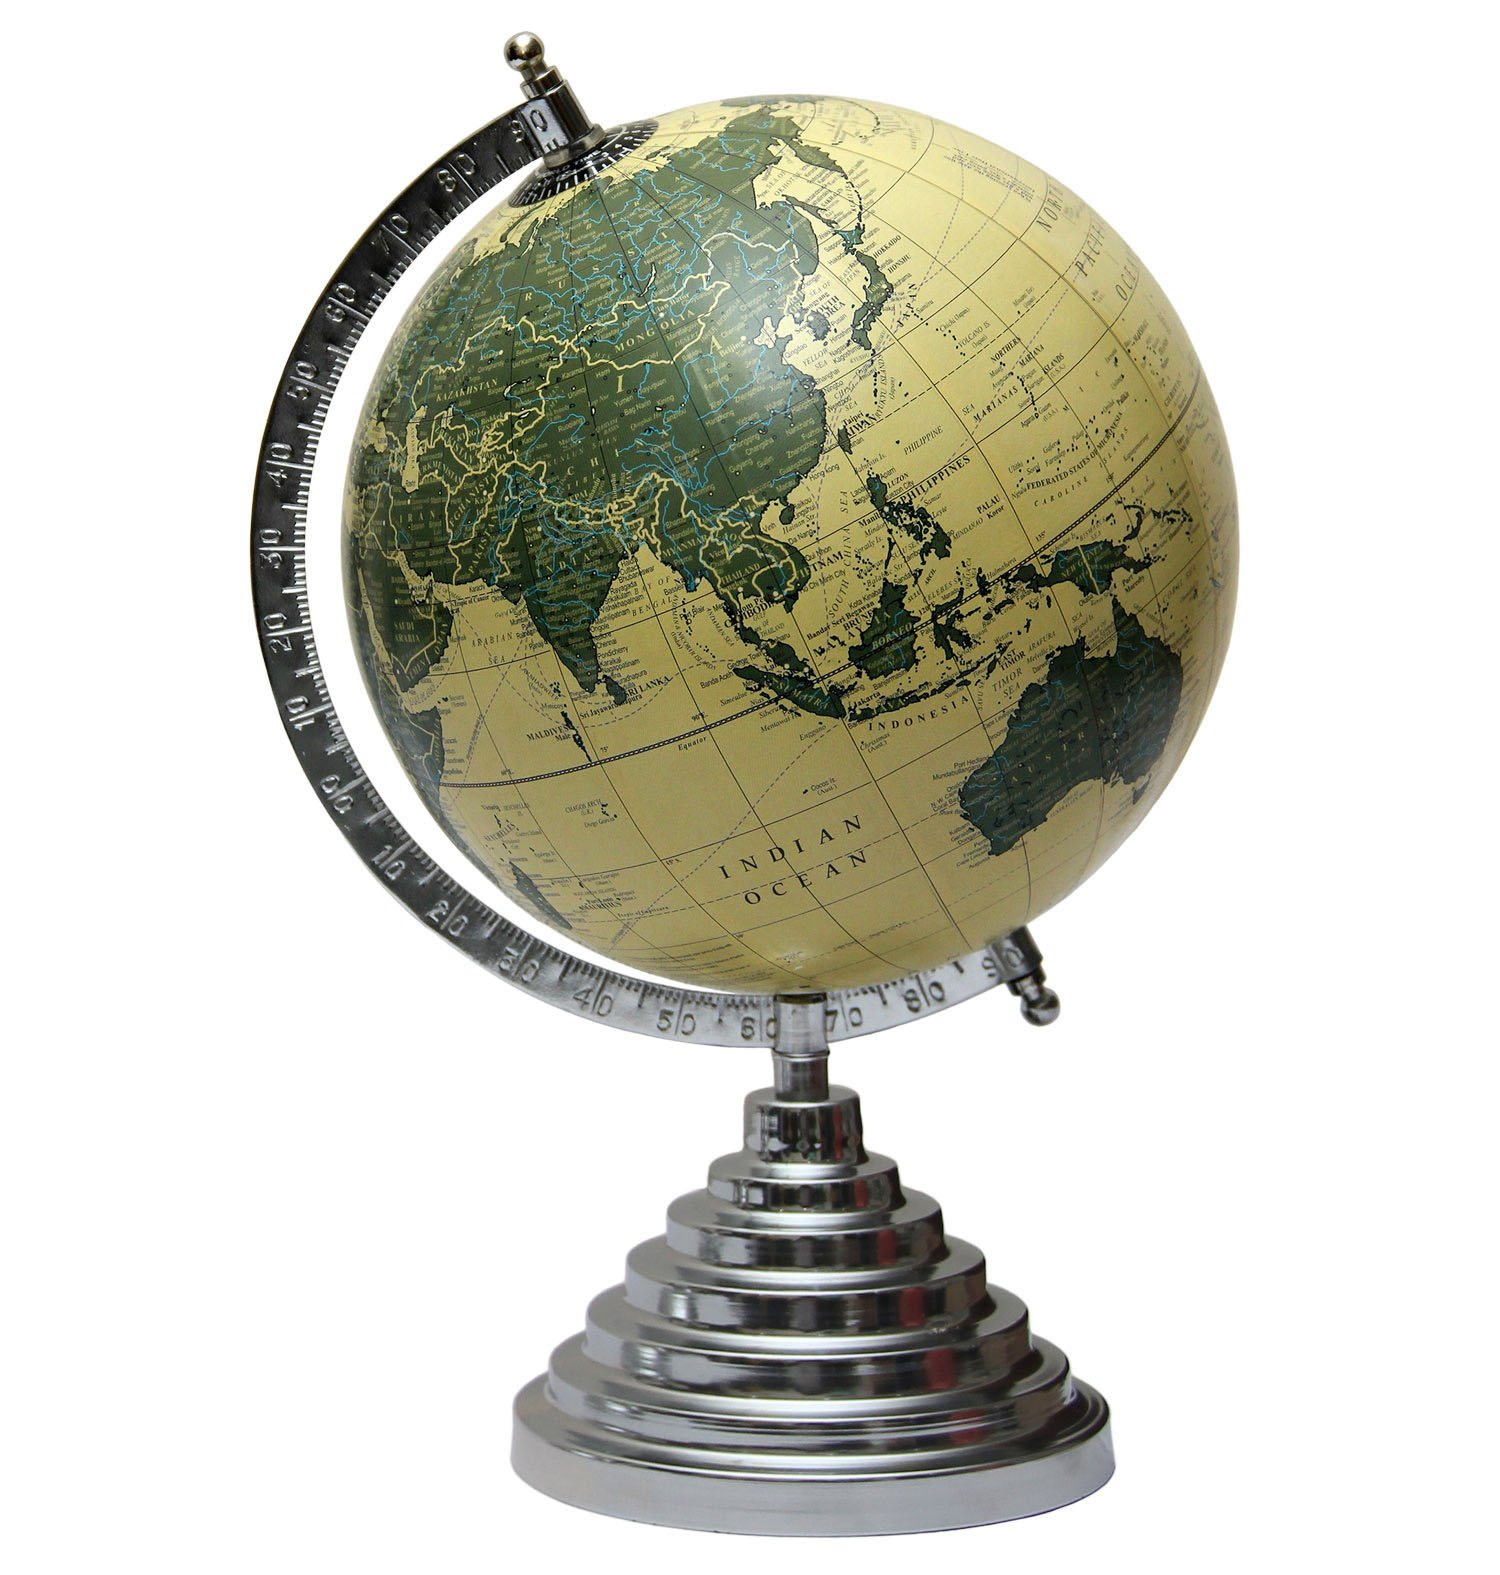 MasterpieceIndia 8 Inches Diameter Geographical Educational World Earth Desktop Medium Gift Decor Kids Office Home Decorative Tabletop Globe (Beige2)